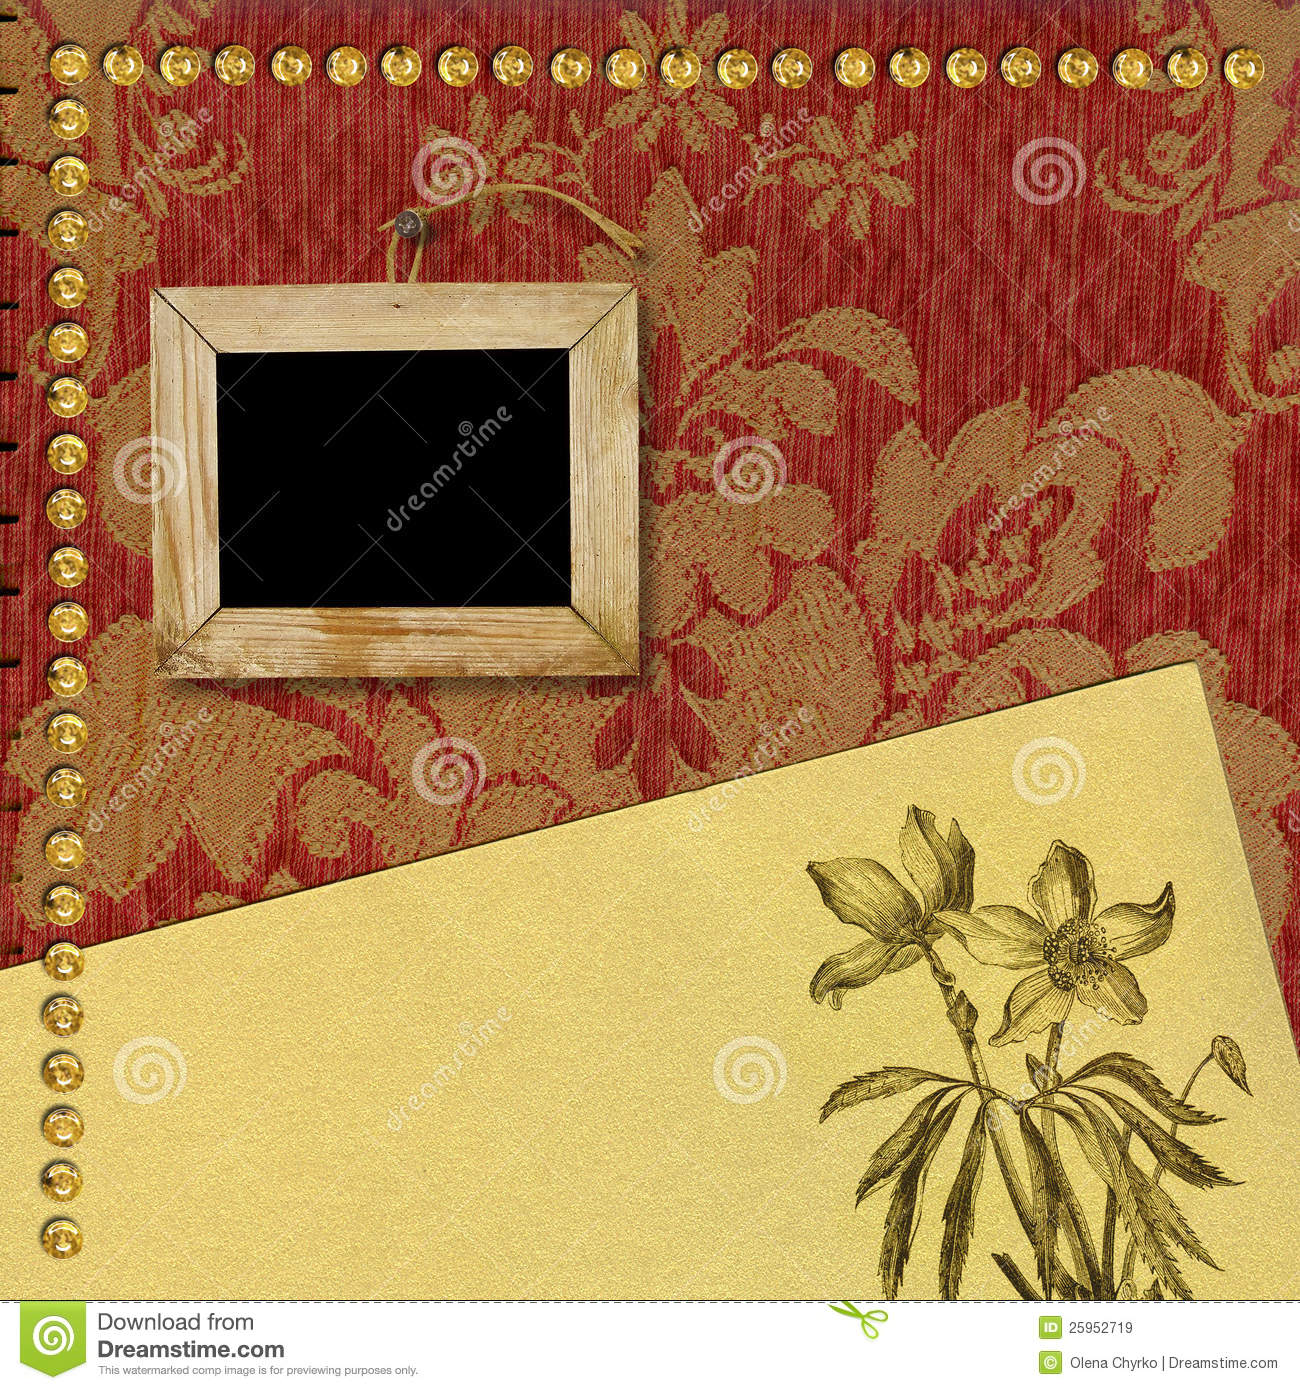 the page template for a photo book album stock illustration